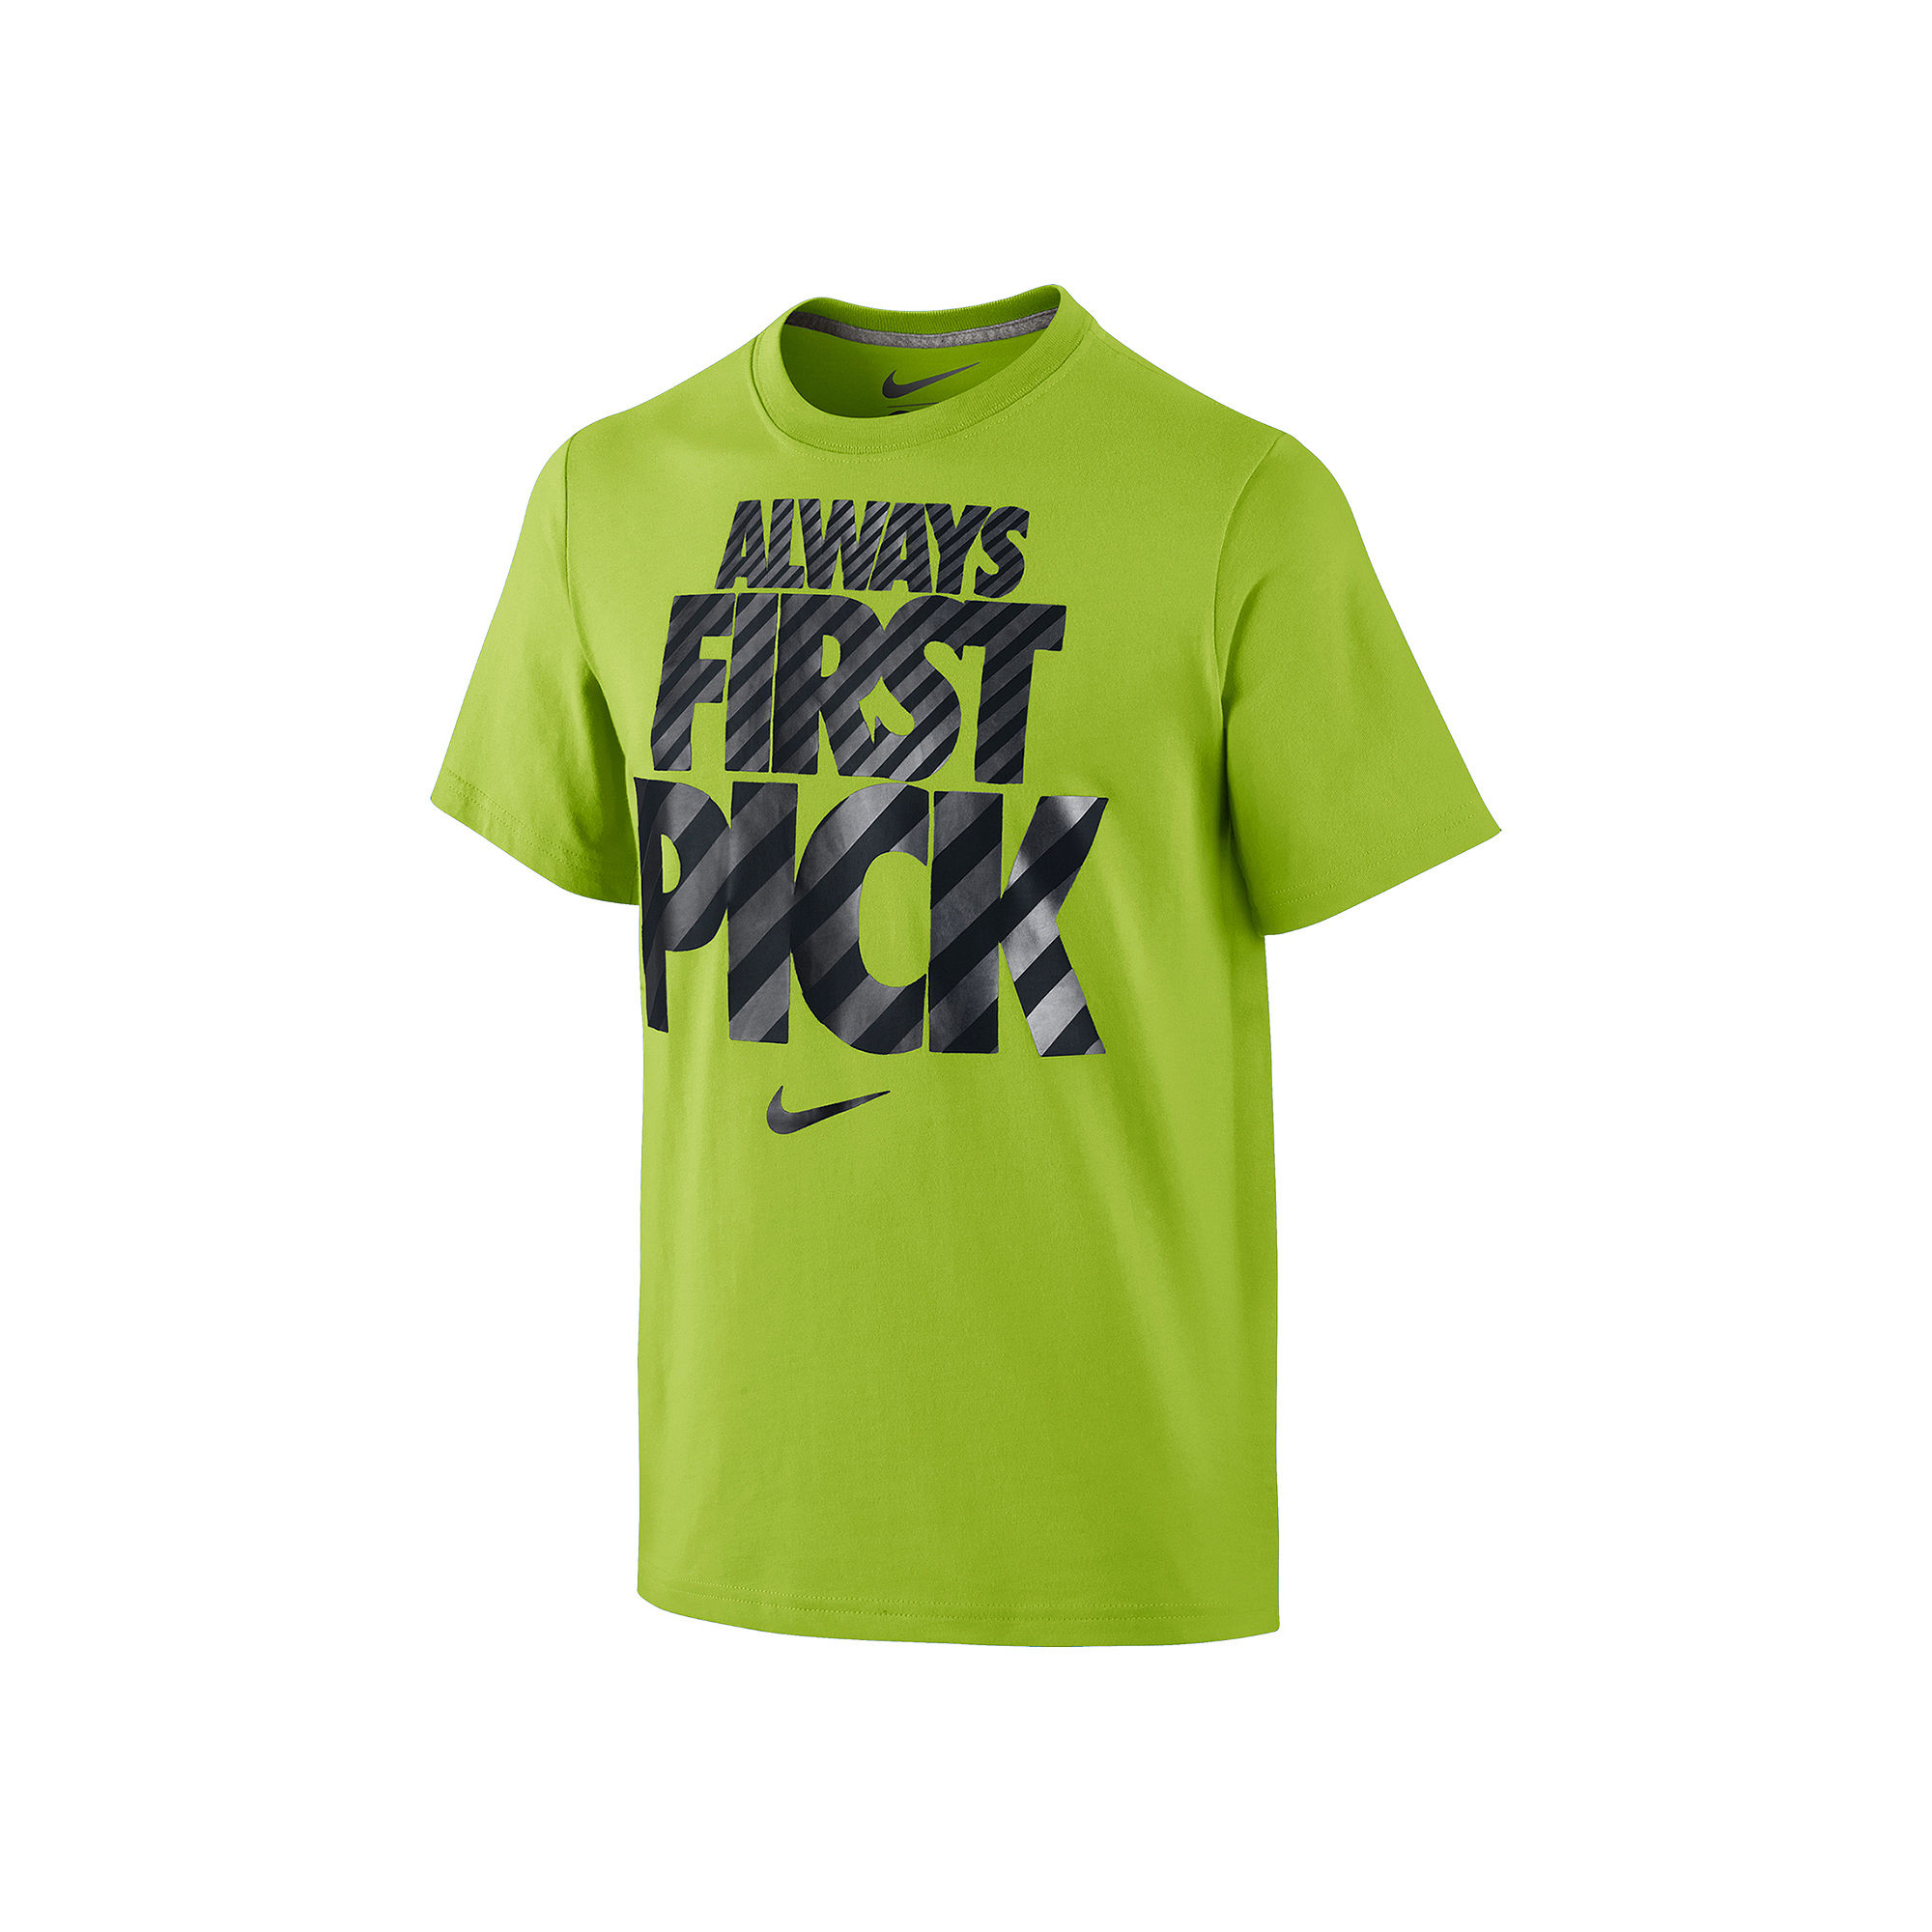 87213703 ... UPC 882801338922 product image for Nike Graphic Tee - Boys 8-20 |  upcitemdb.